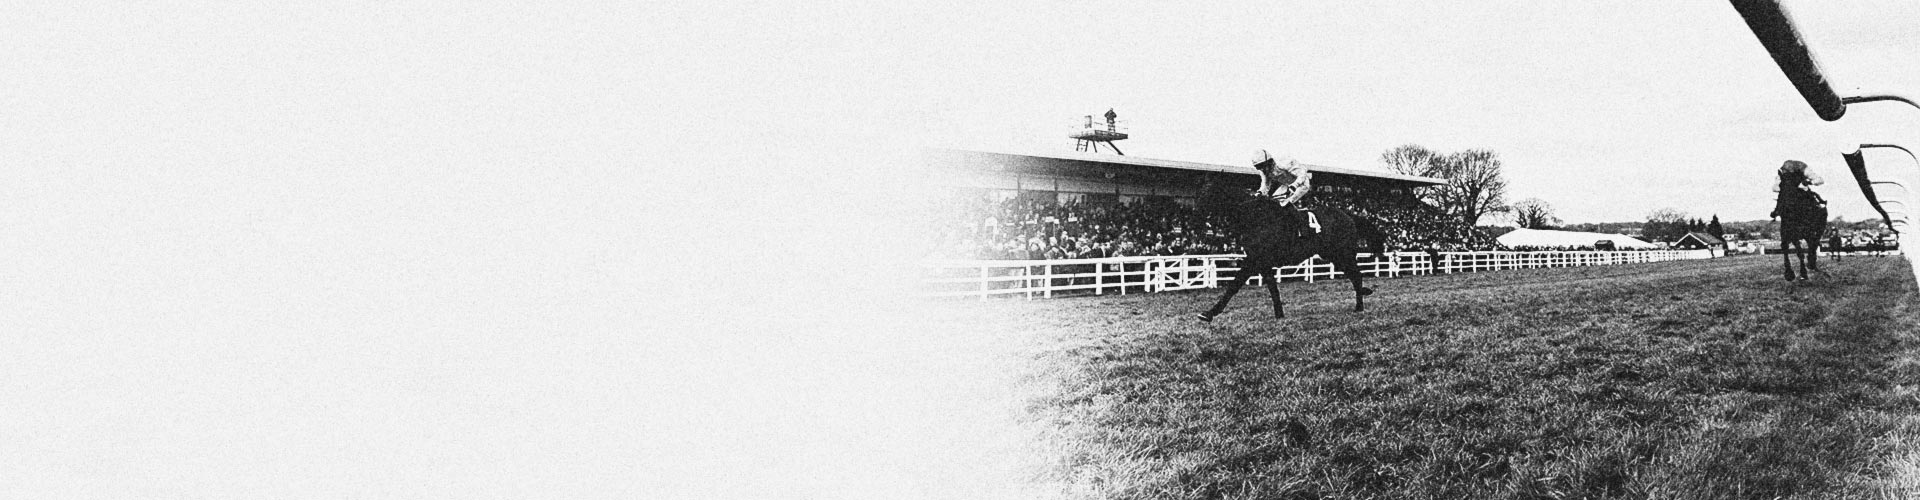 History of Plumpton Racecourse